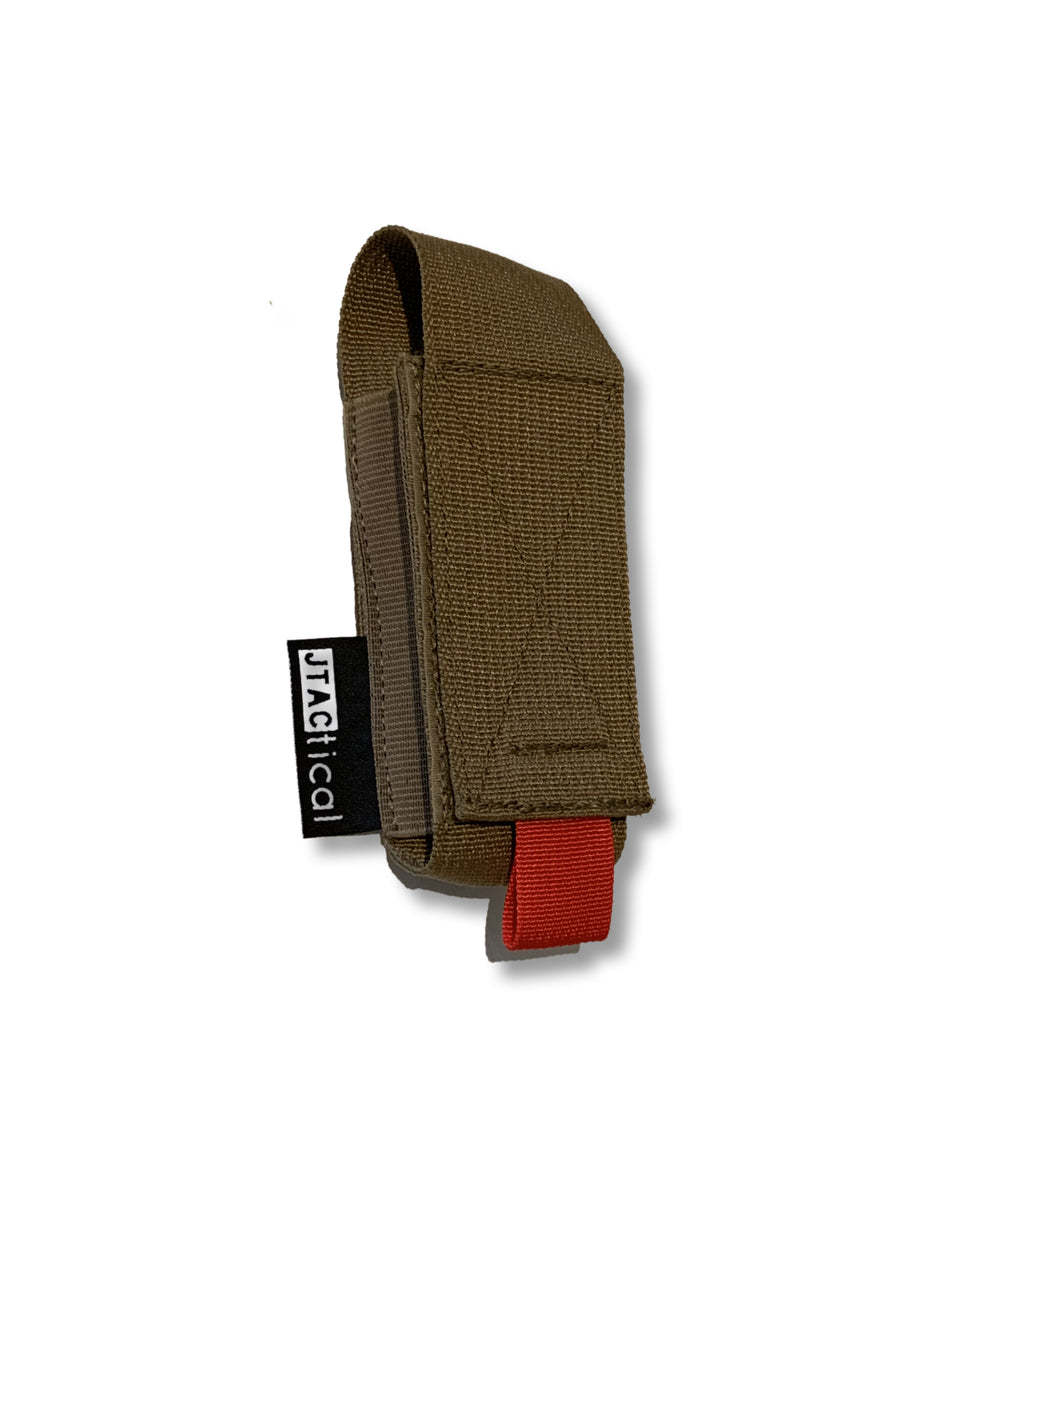 j tactical solutions multi mount tourniquet pouch coyote